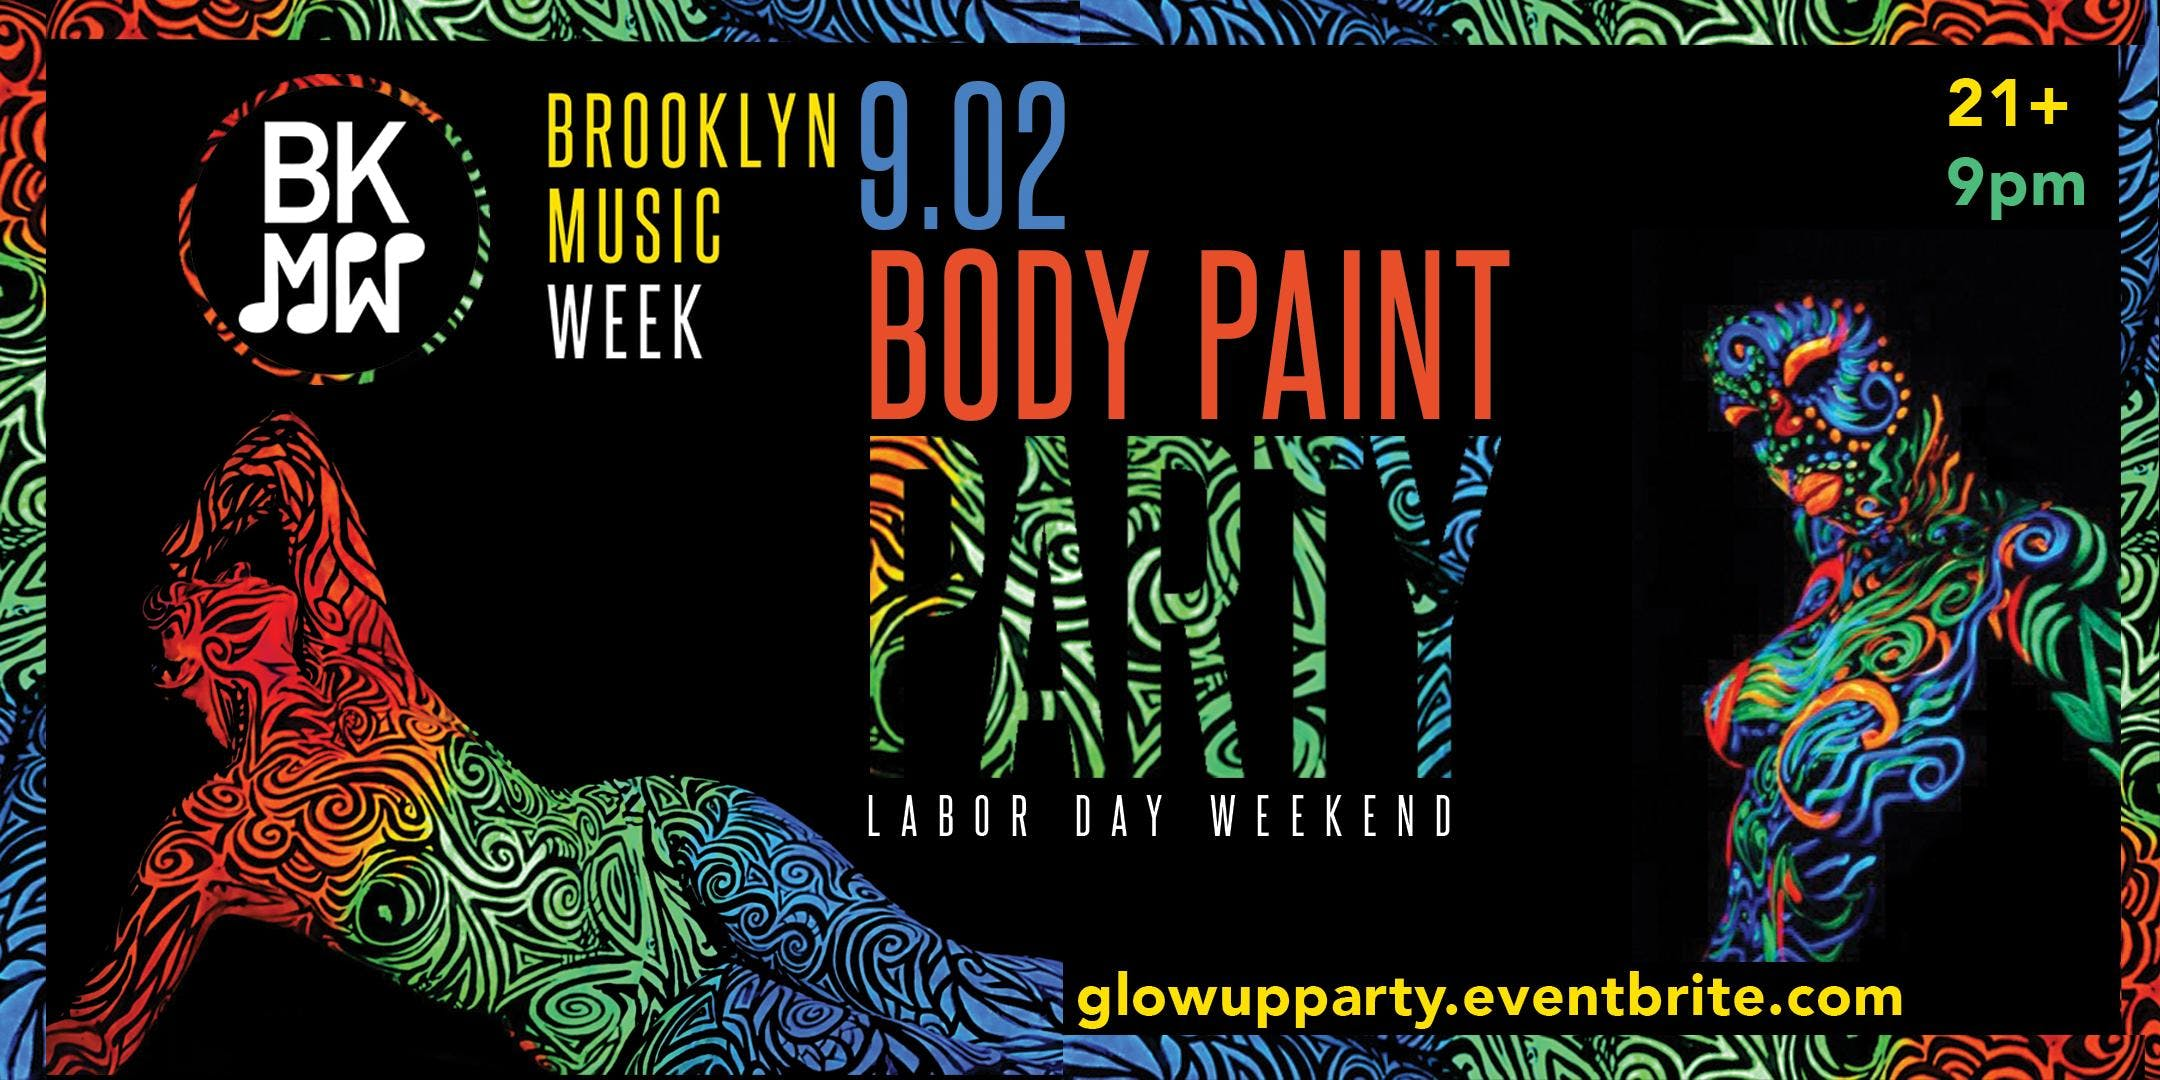 Glow Up Body Paint Party - Brooklyn Music Wee